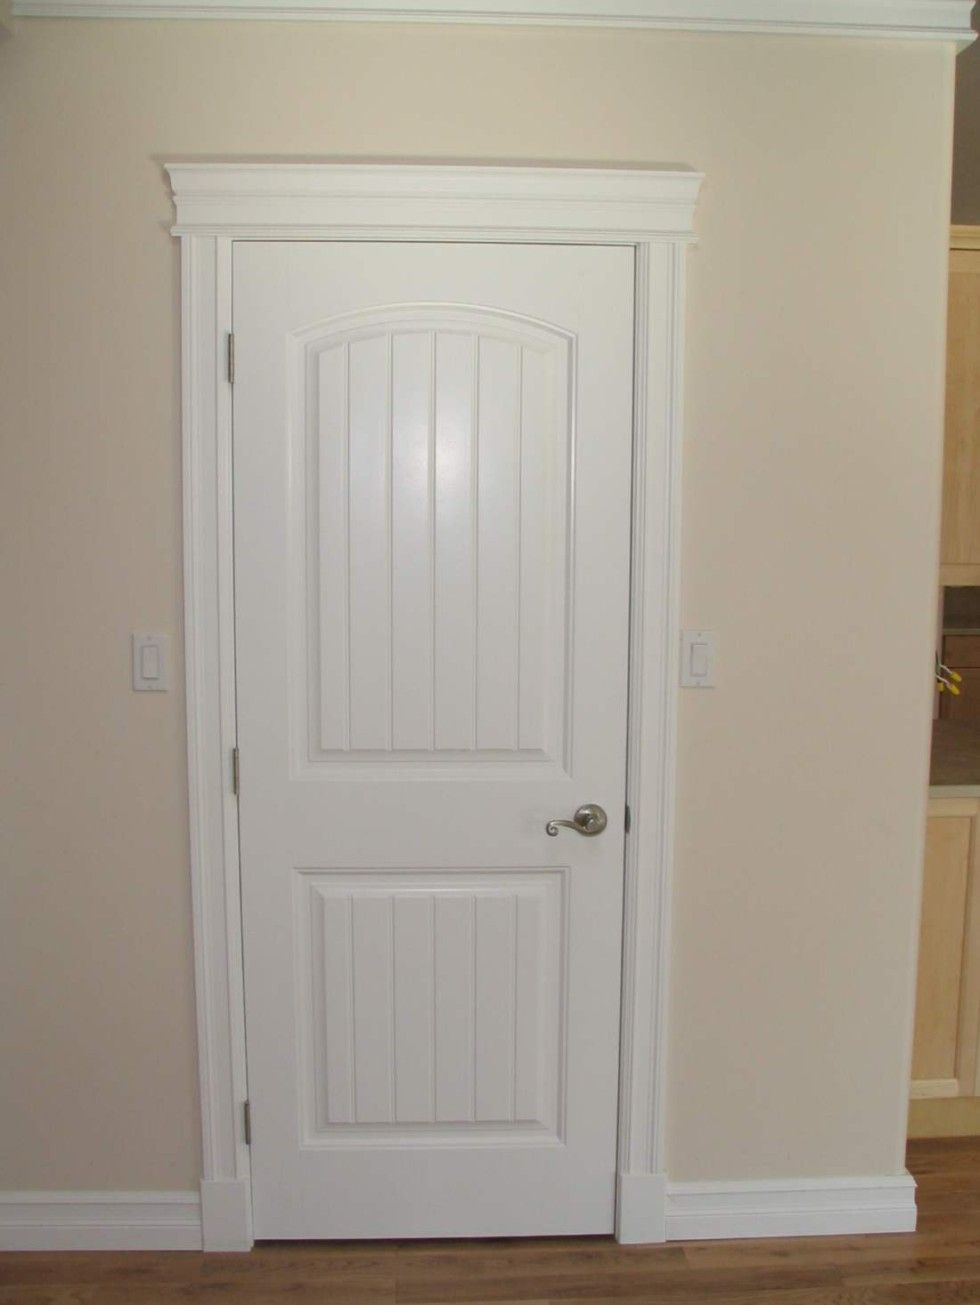 Ordinaire Door Trim